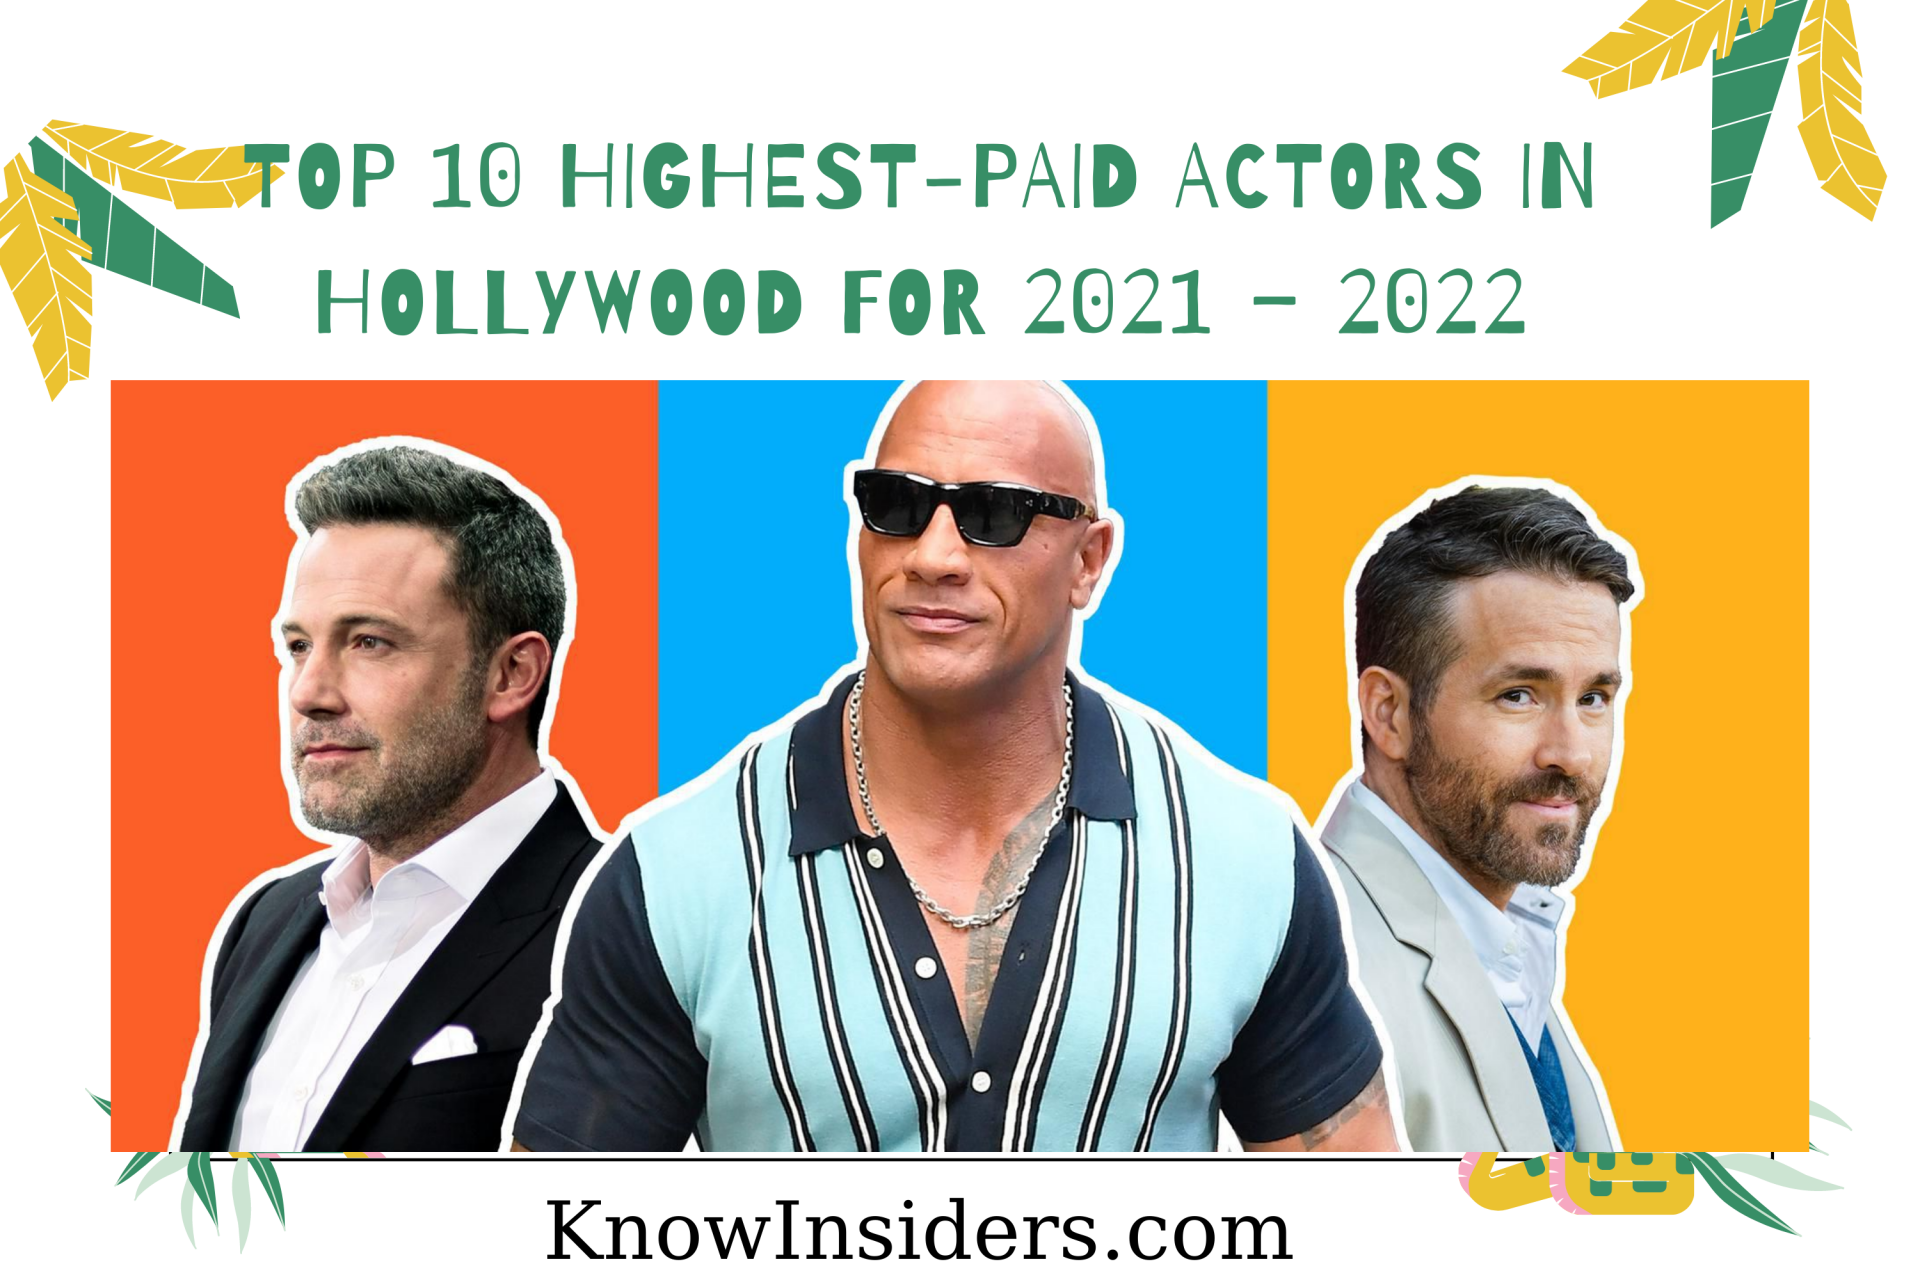 Top 10 Highest-Paid Actors in Hollywood for 2021/2022